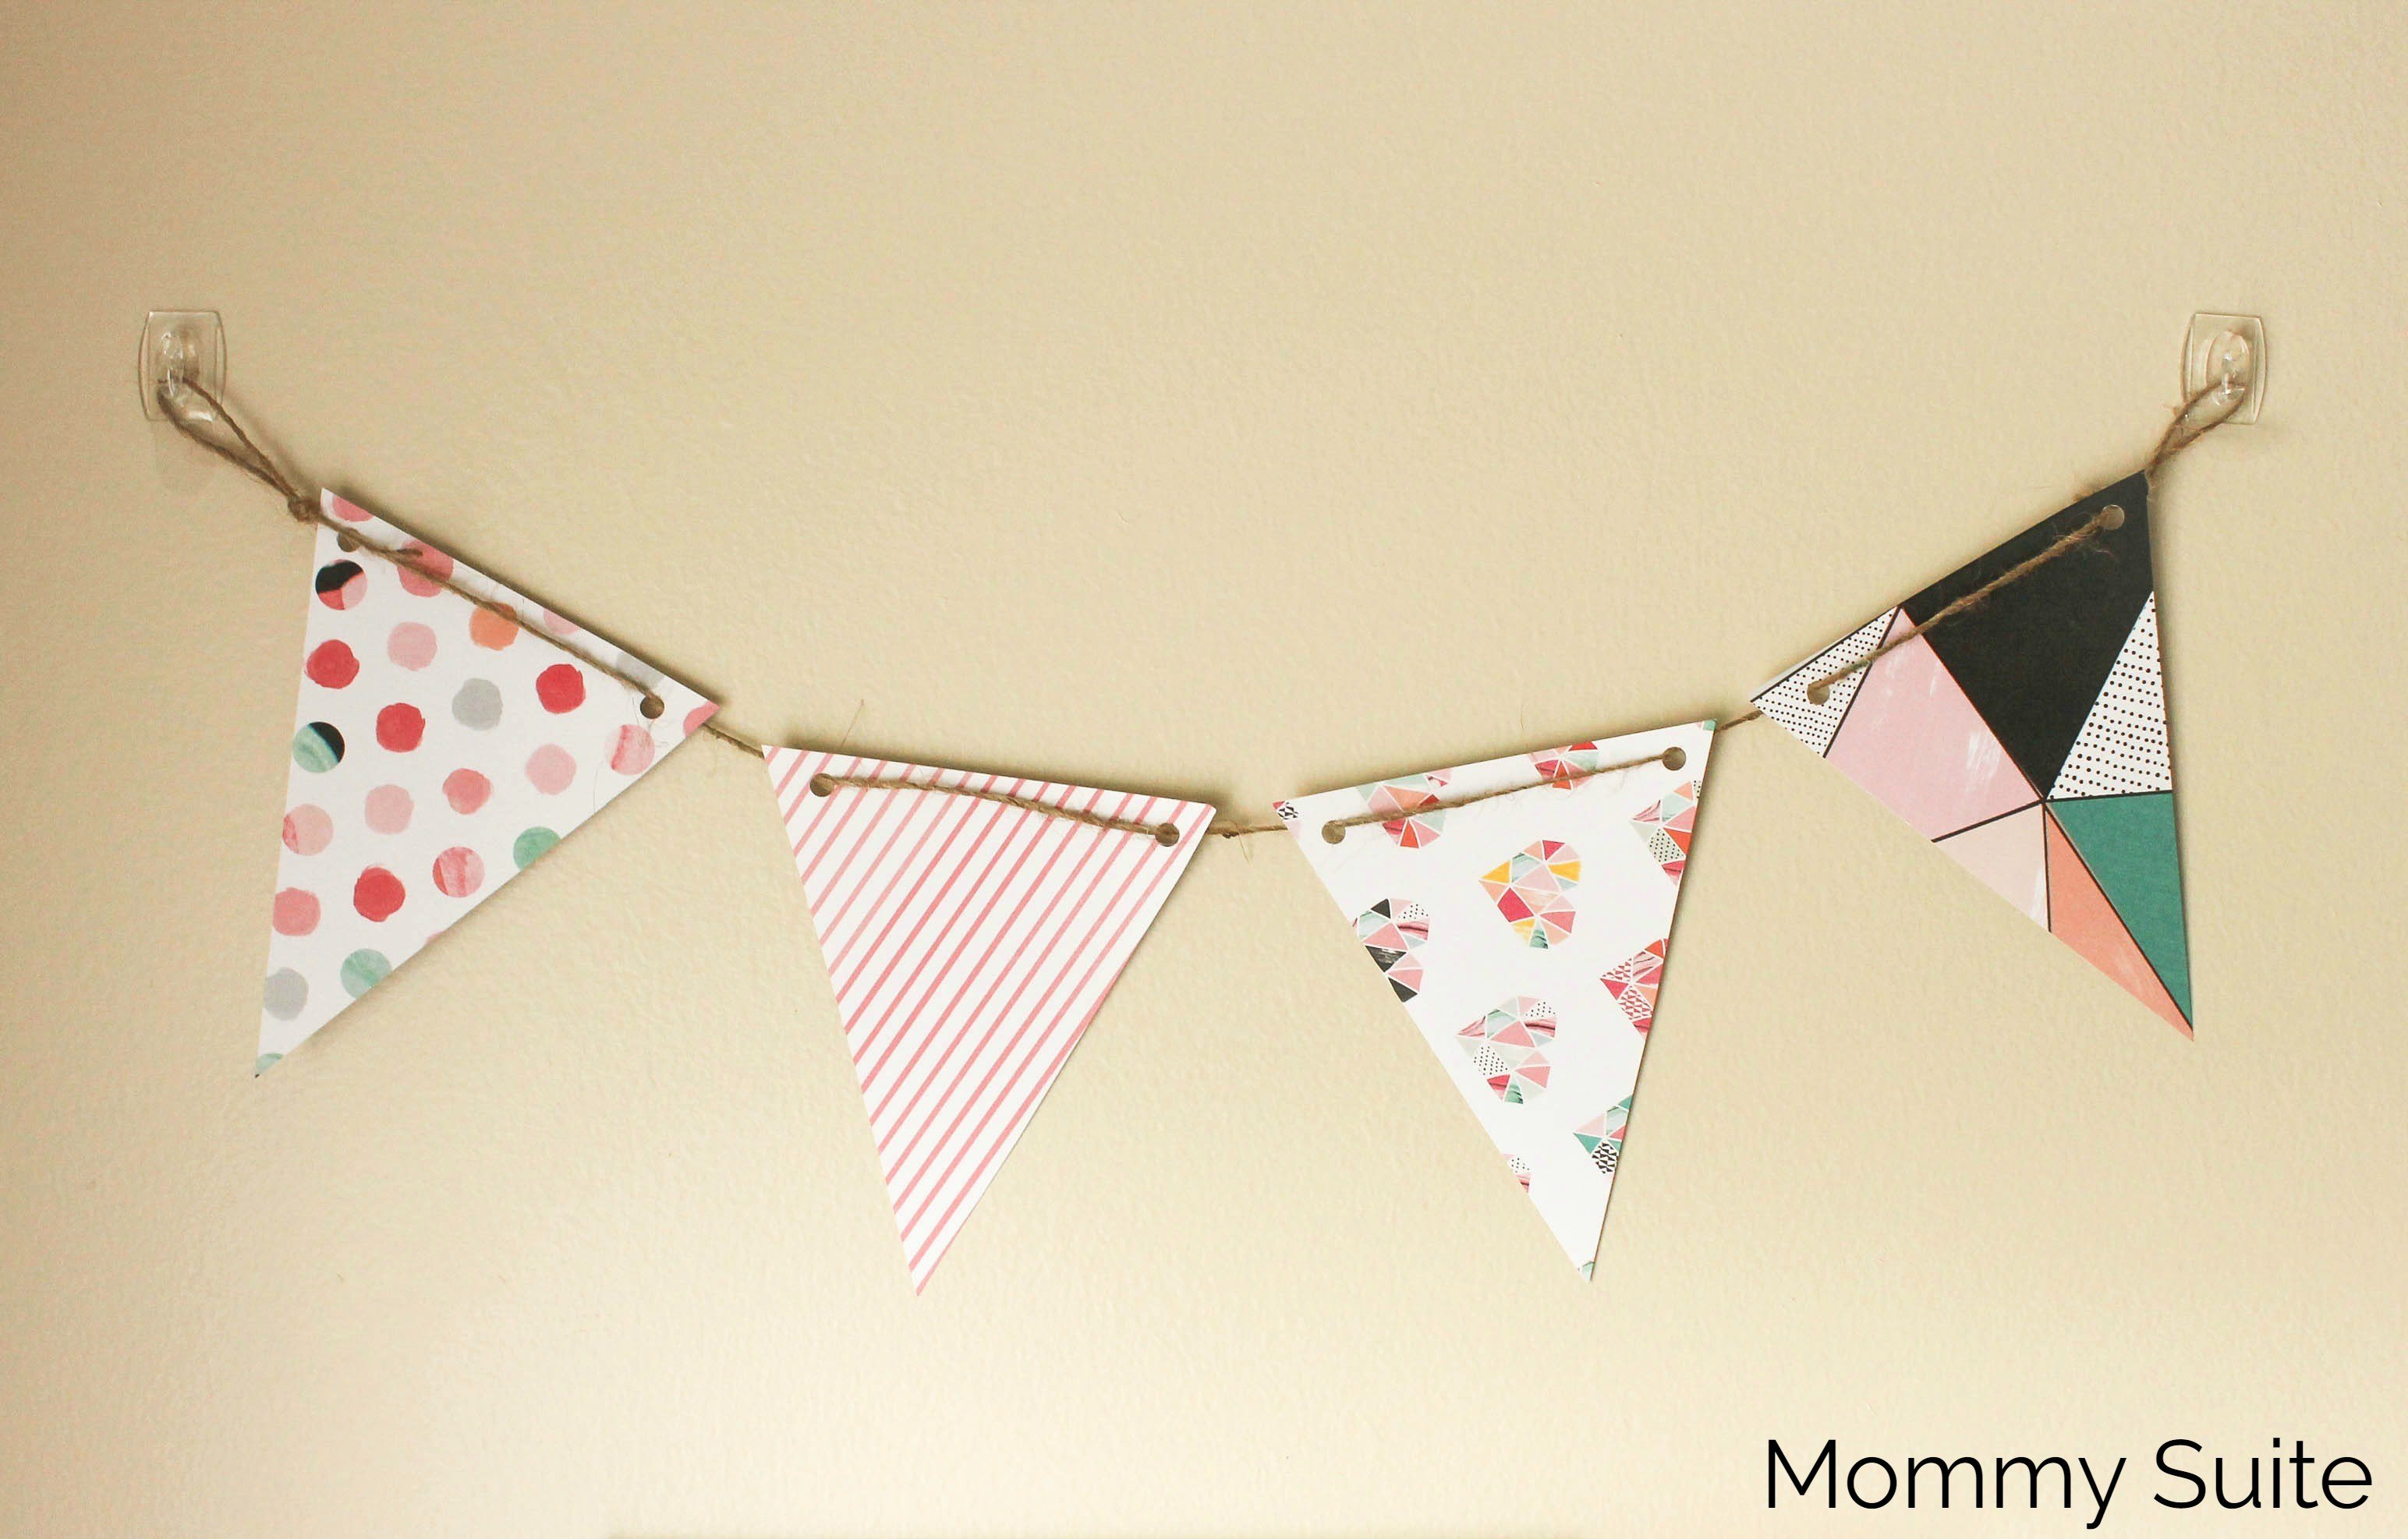 Diy Pennant Banner Template Beautiful Diy Paper Pennant Banner W Free Template Mommy Suite